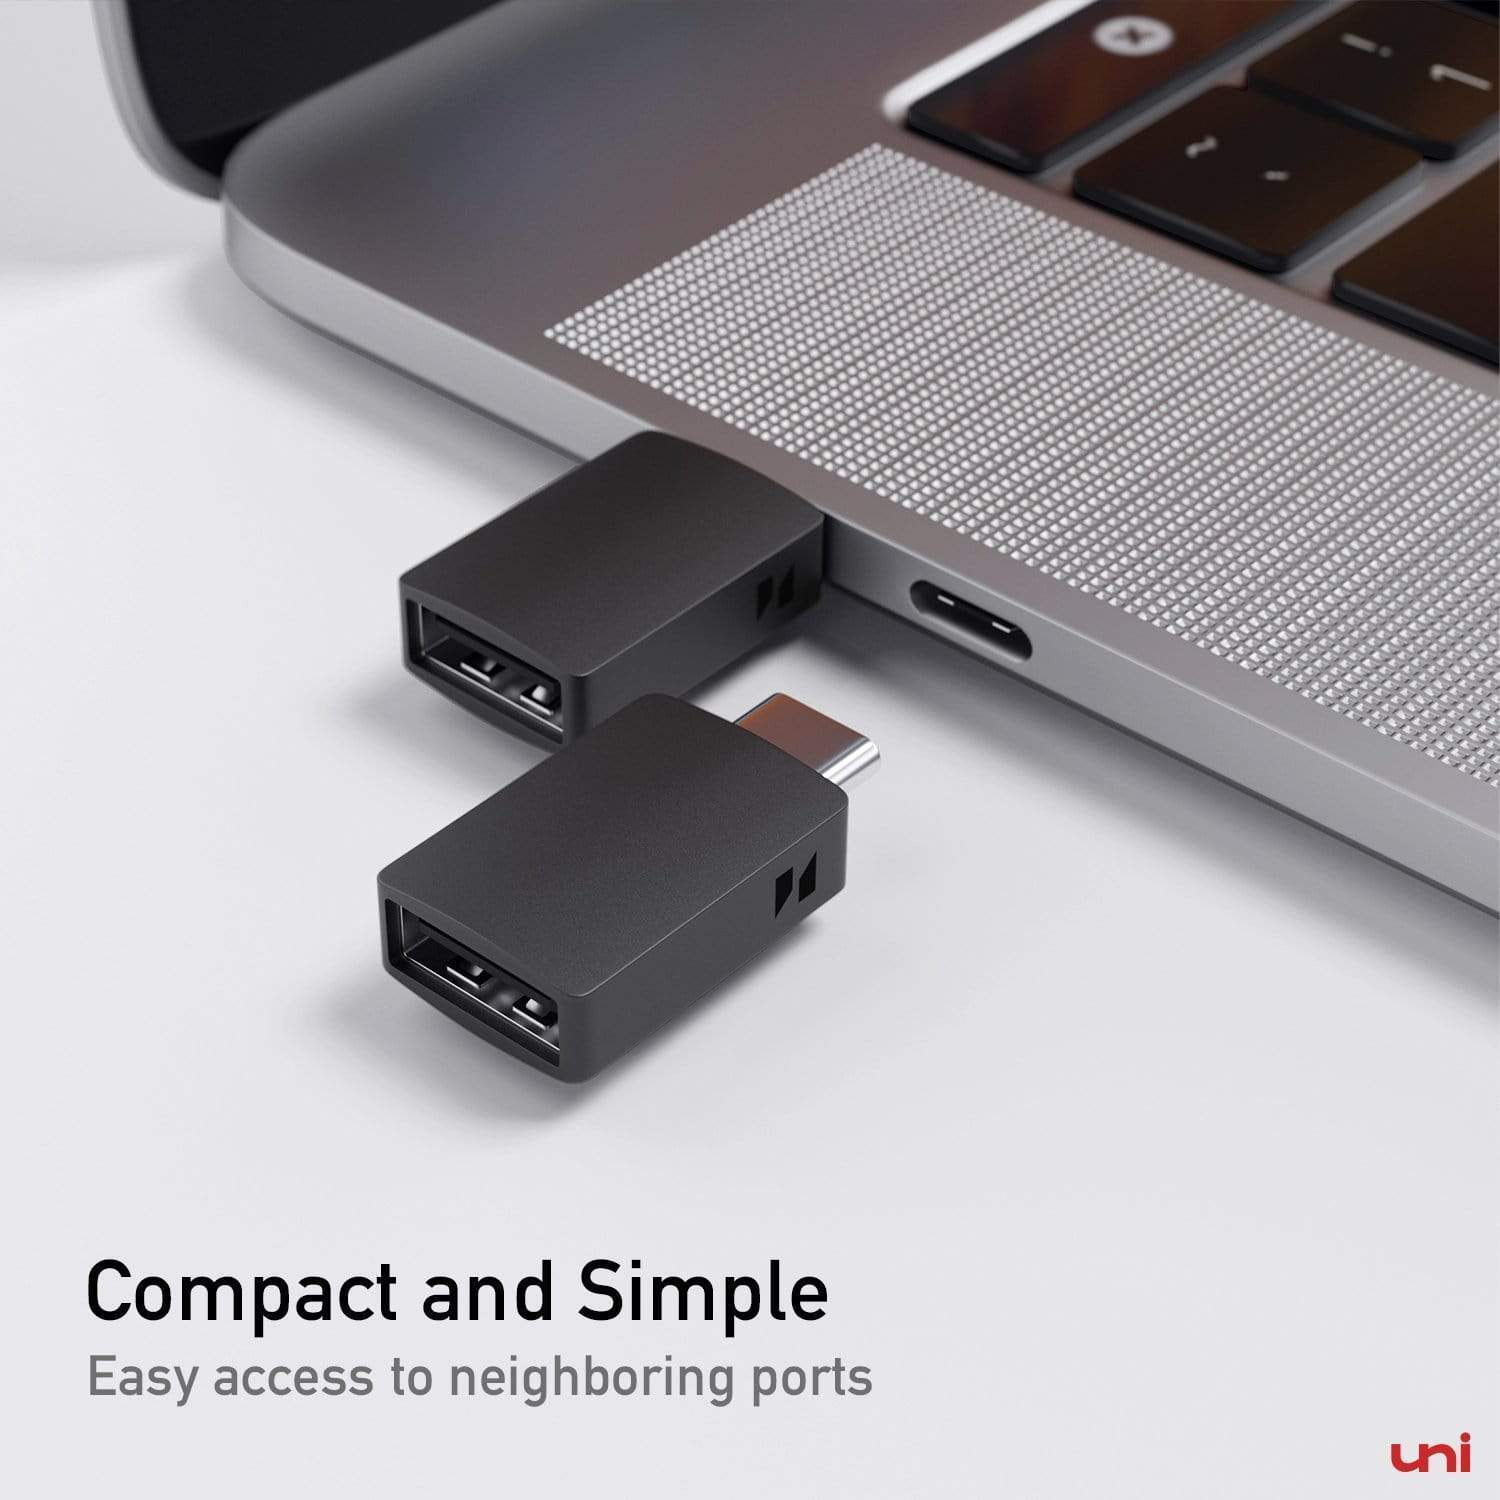 USB-C to USB 3.0 Adapter - 2 Pack, usb c to usb adapter, usb c male adapter, type-c to usb adapter, usb female to usb c male adapter